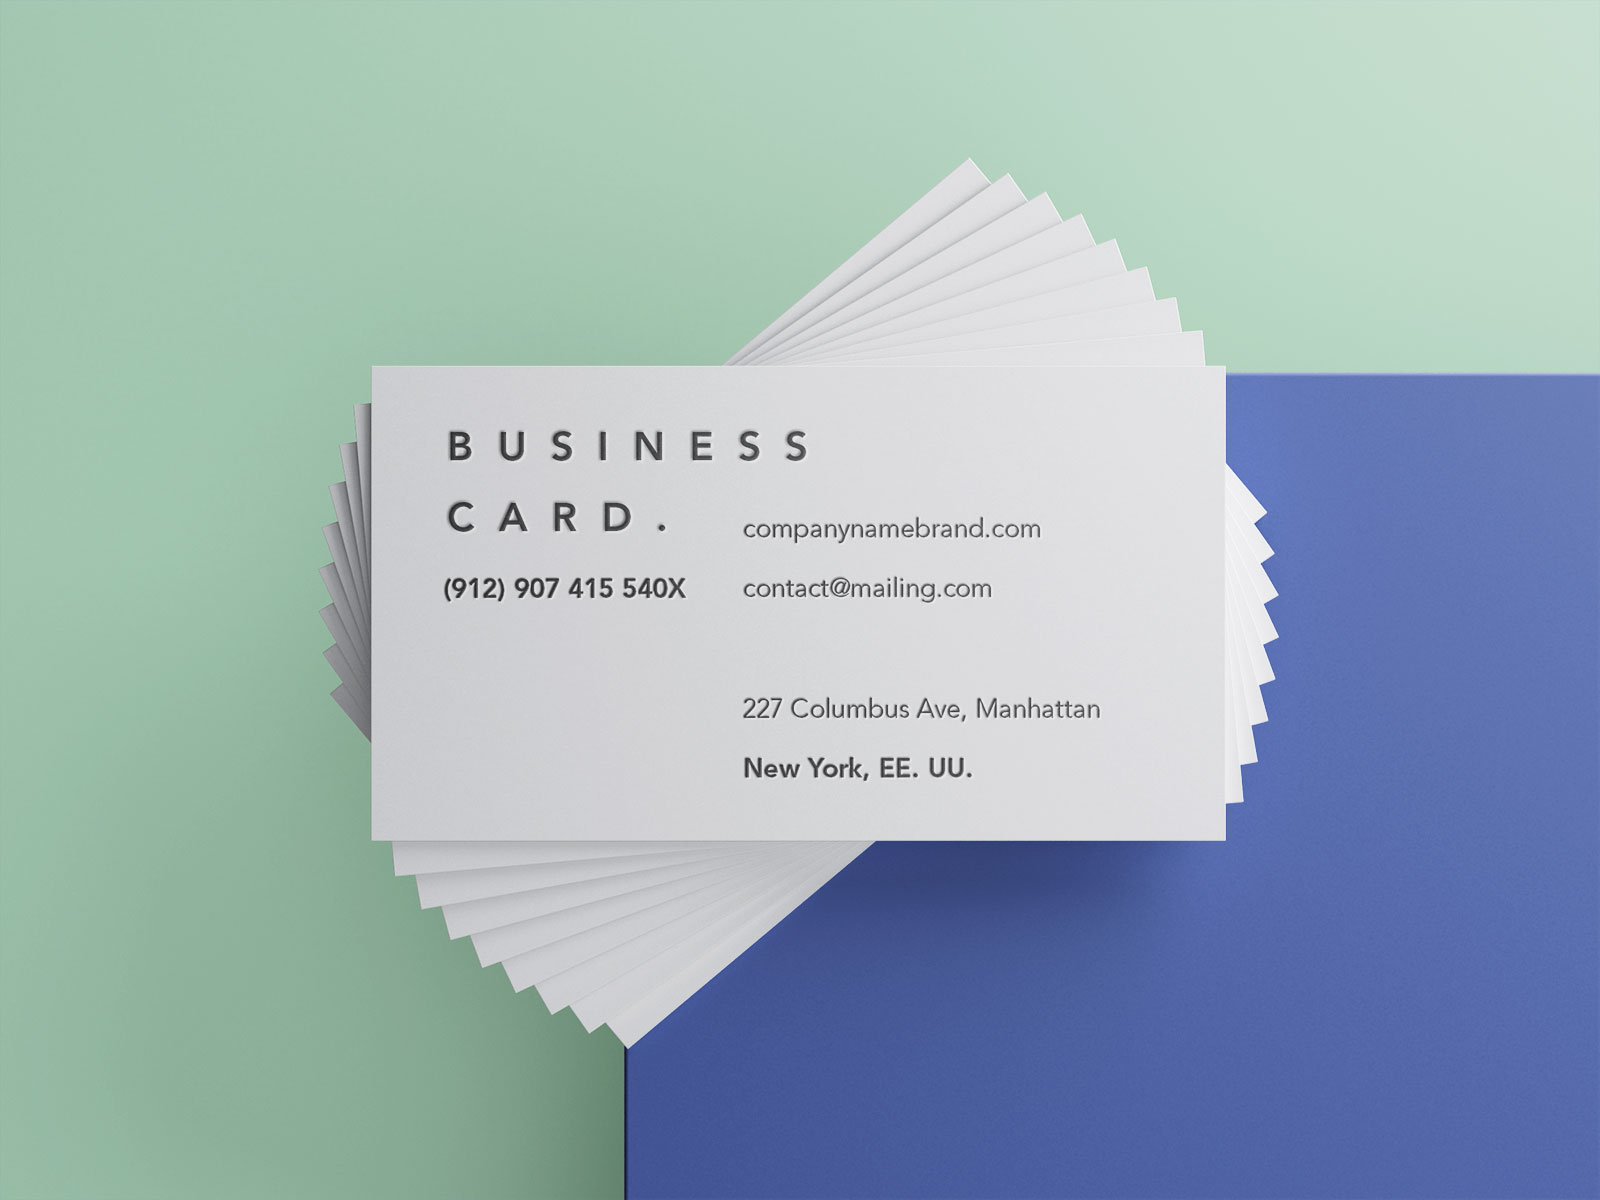 Free-Colored-Edge-Business-Card-Mockup-PSD-3